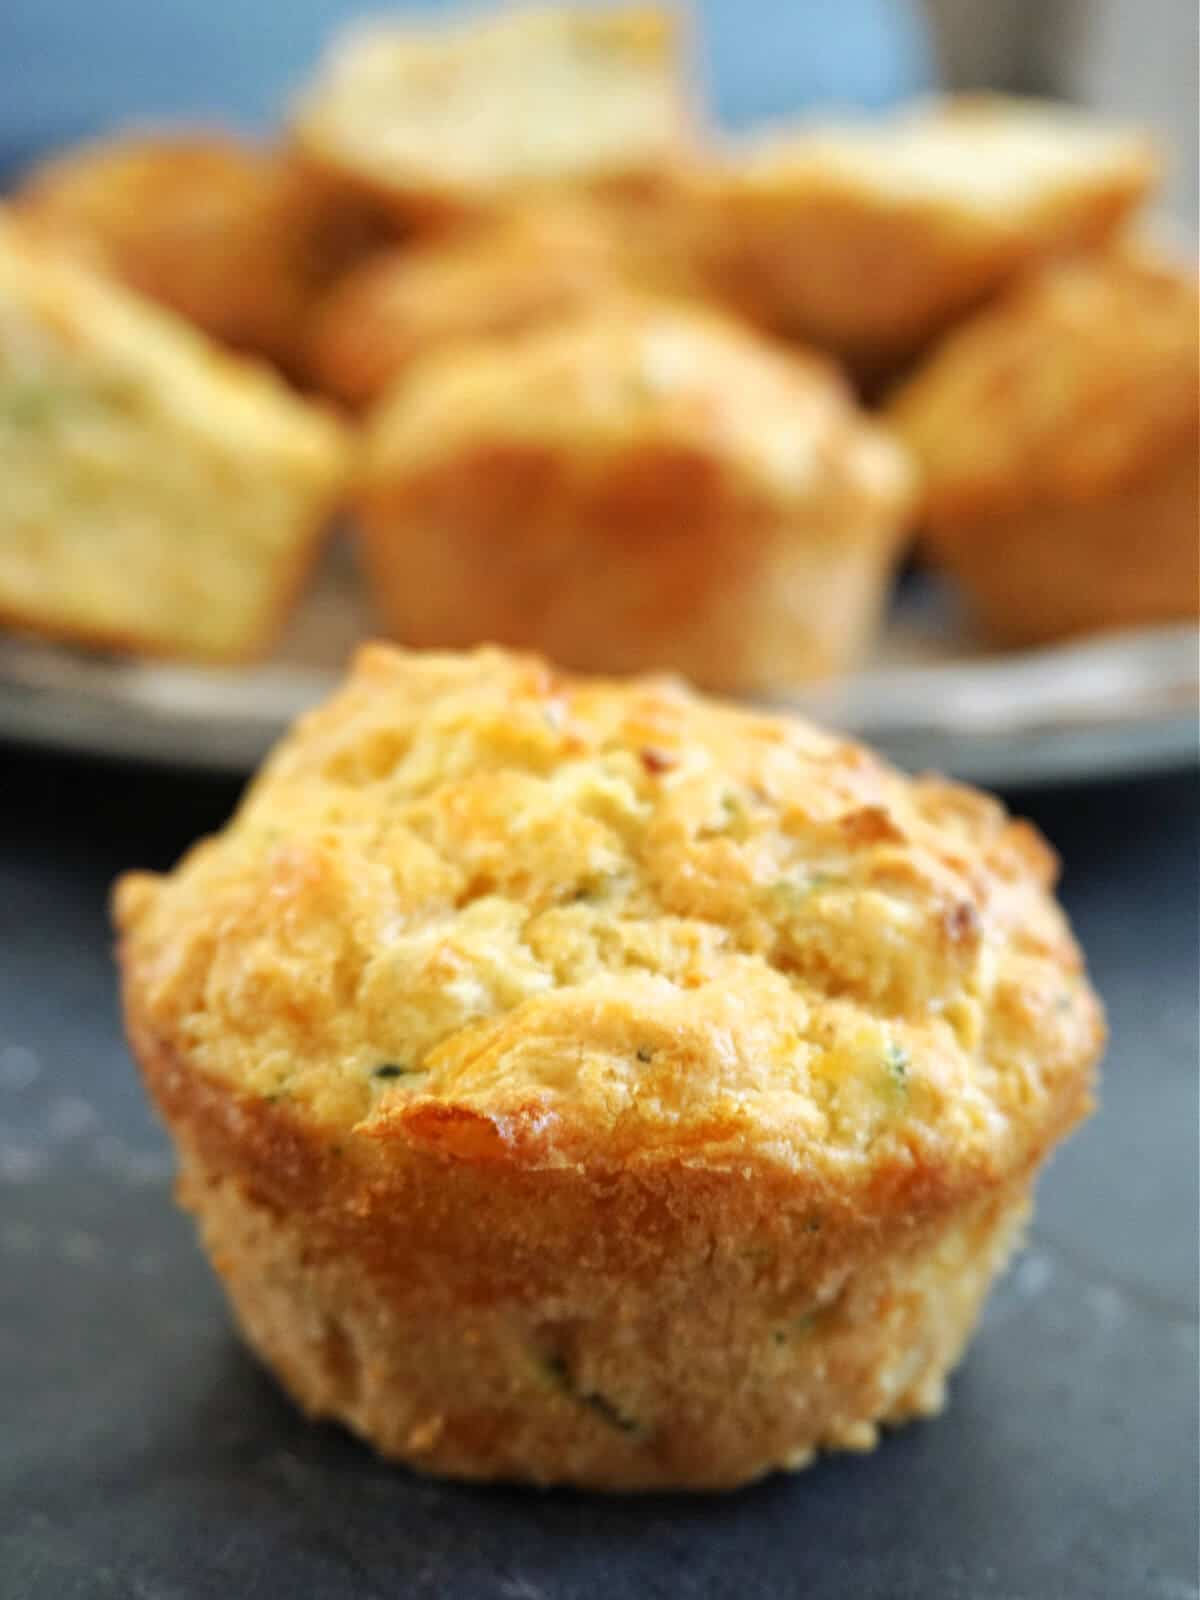 Close-up shot of a carrot and courgette muffins with more muffins in the background